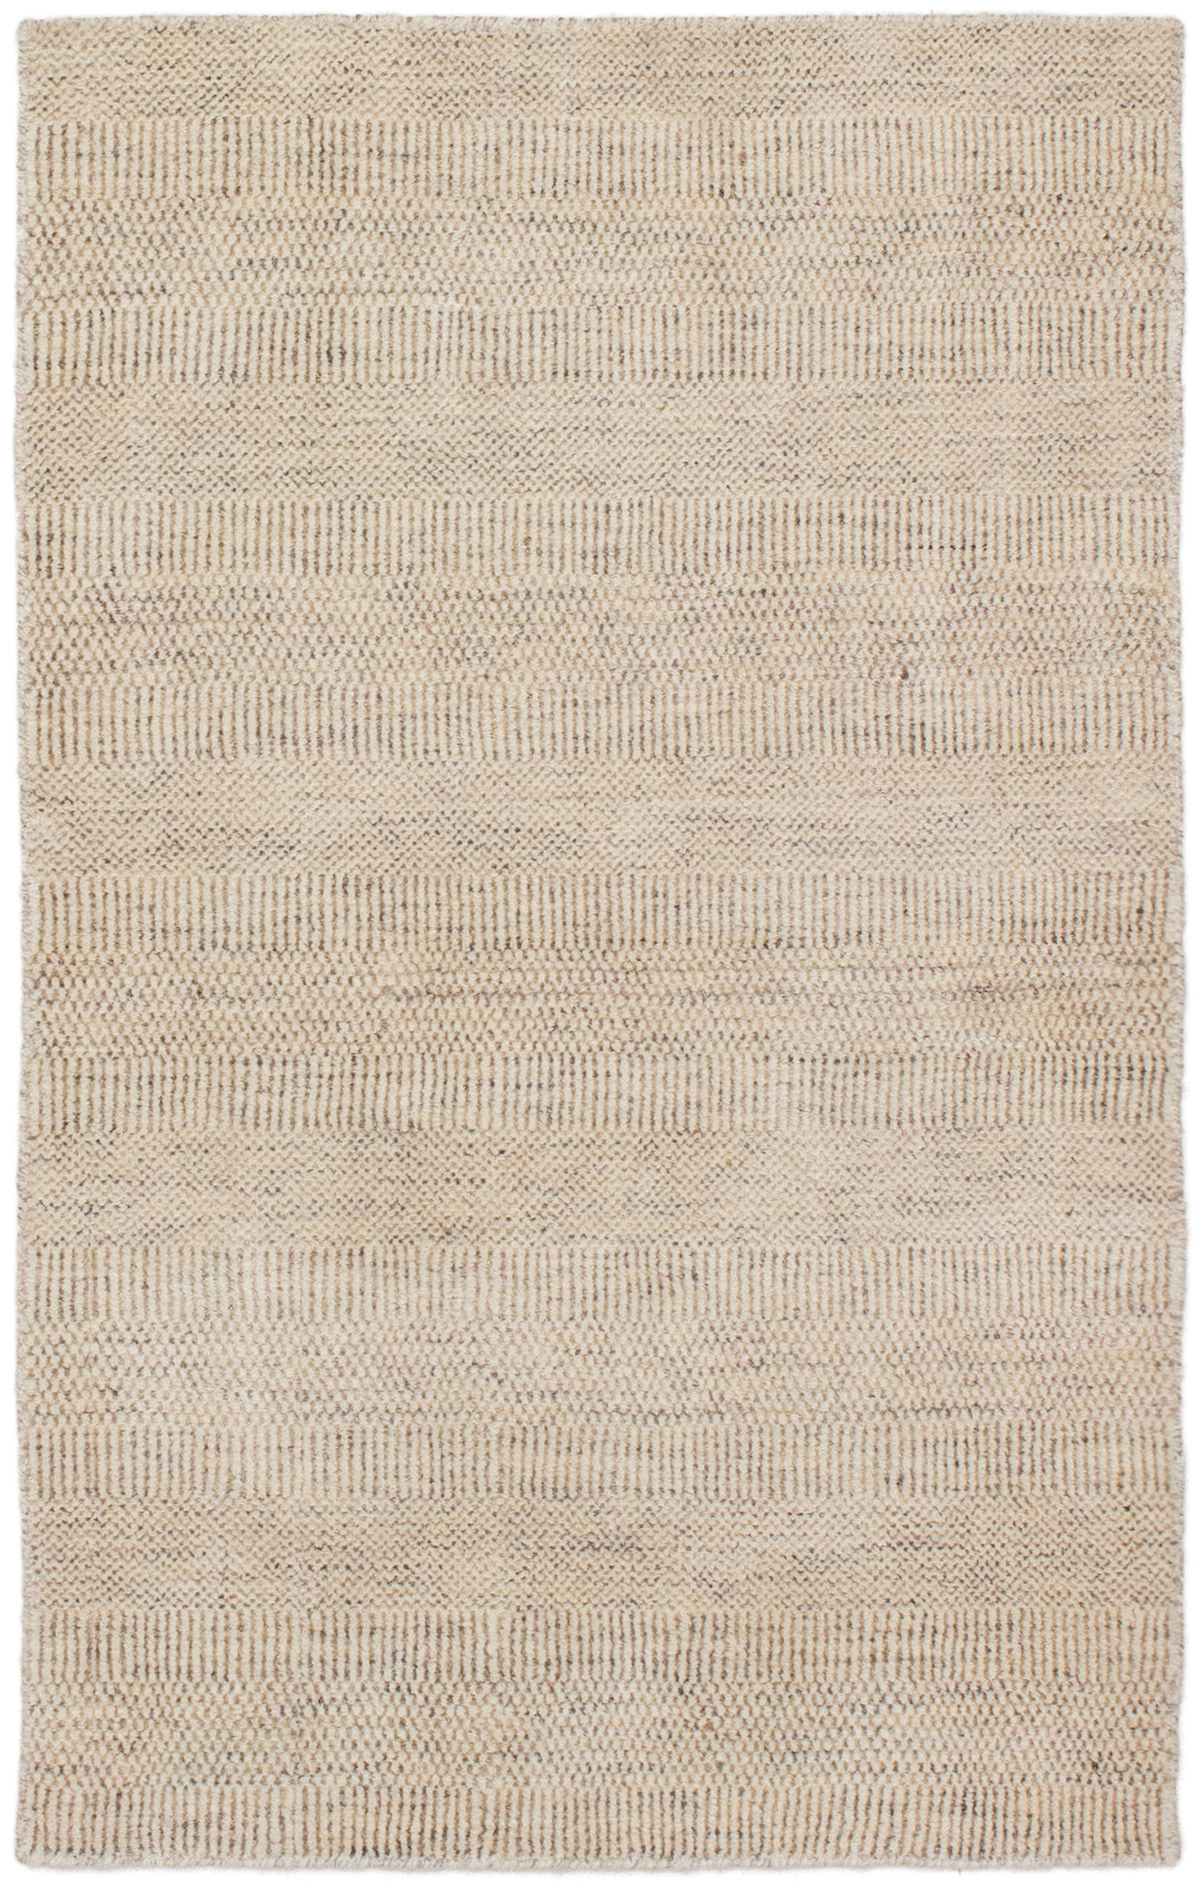 "Hand-knotted Pearl Beige  Rug 3'0"" x 5'0"" Size: 3'0"" x 5'0"""